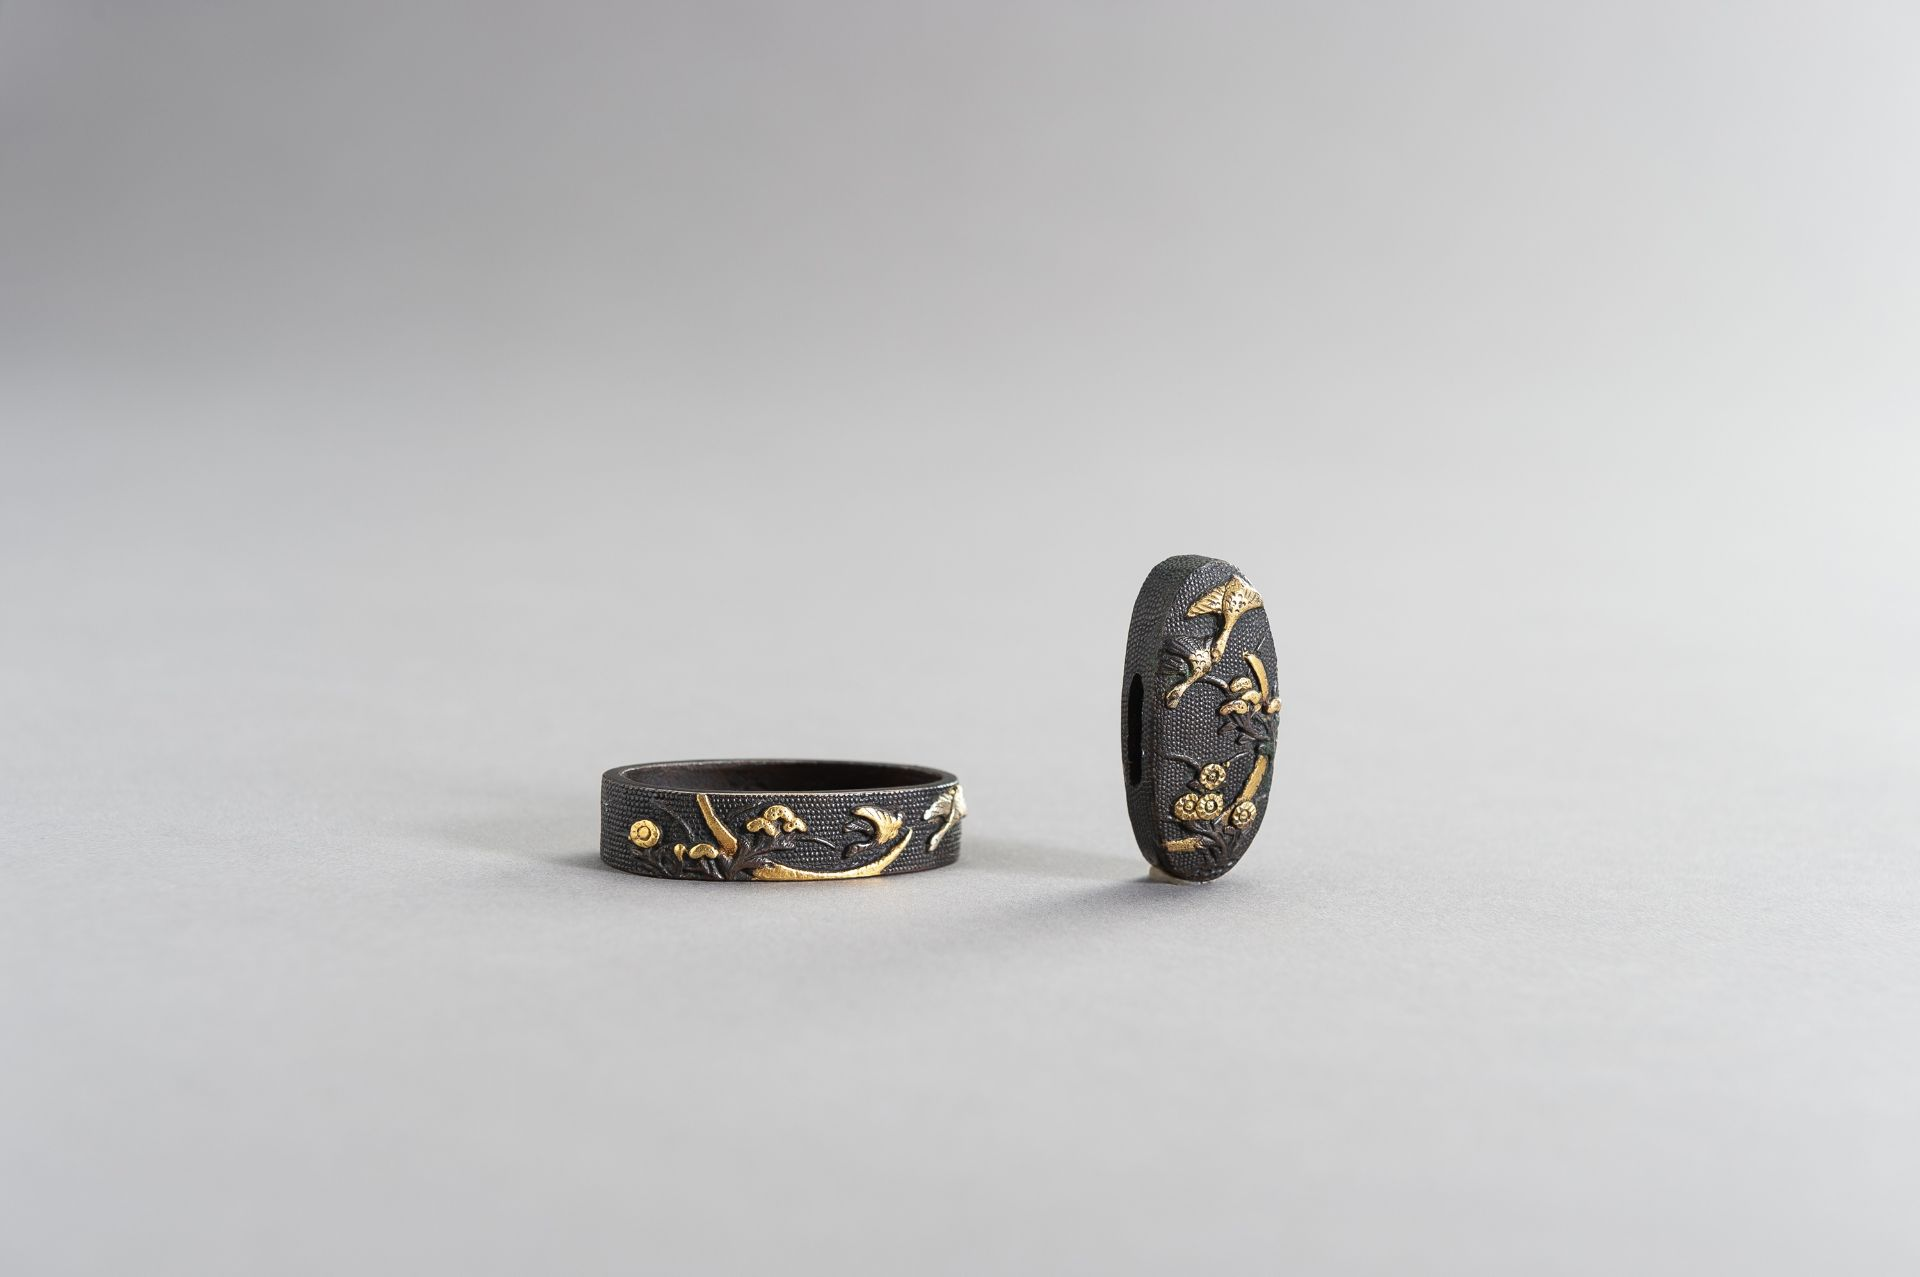 A FINE FUCHI AND KASHIRA WITH GEESE AND MOON - Image 2 of 7